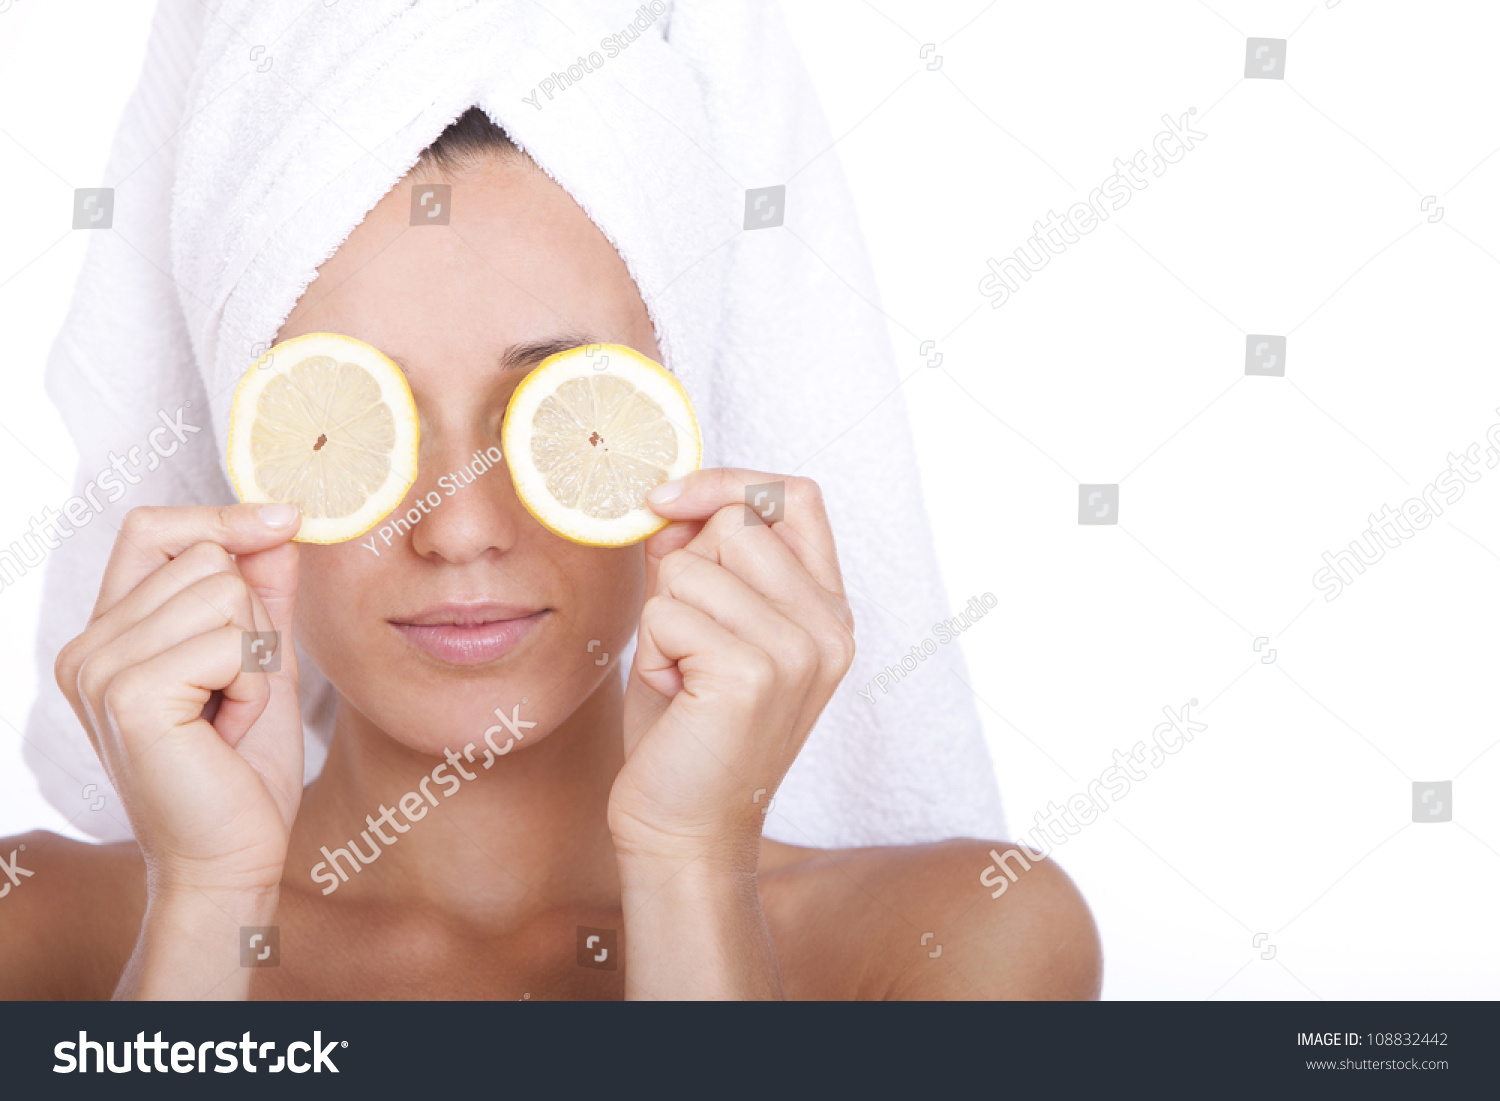 how to clean face with lemon